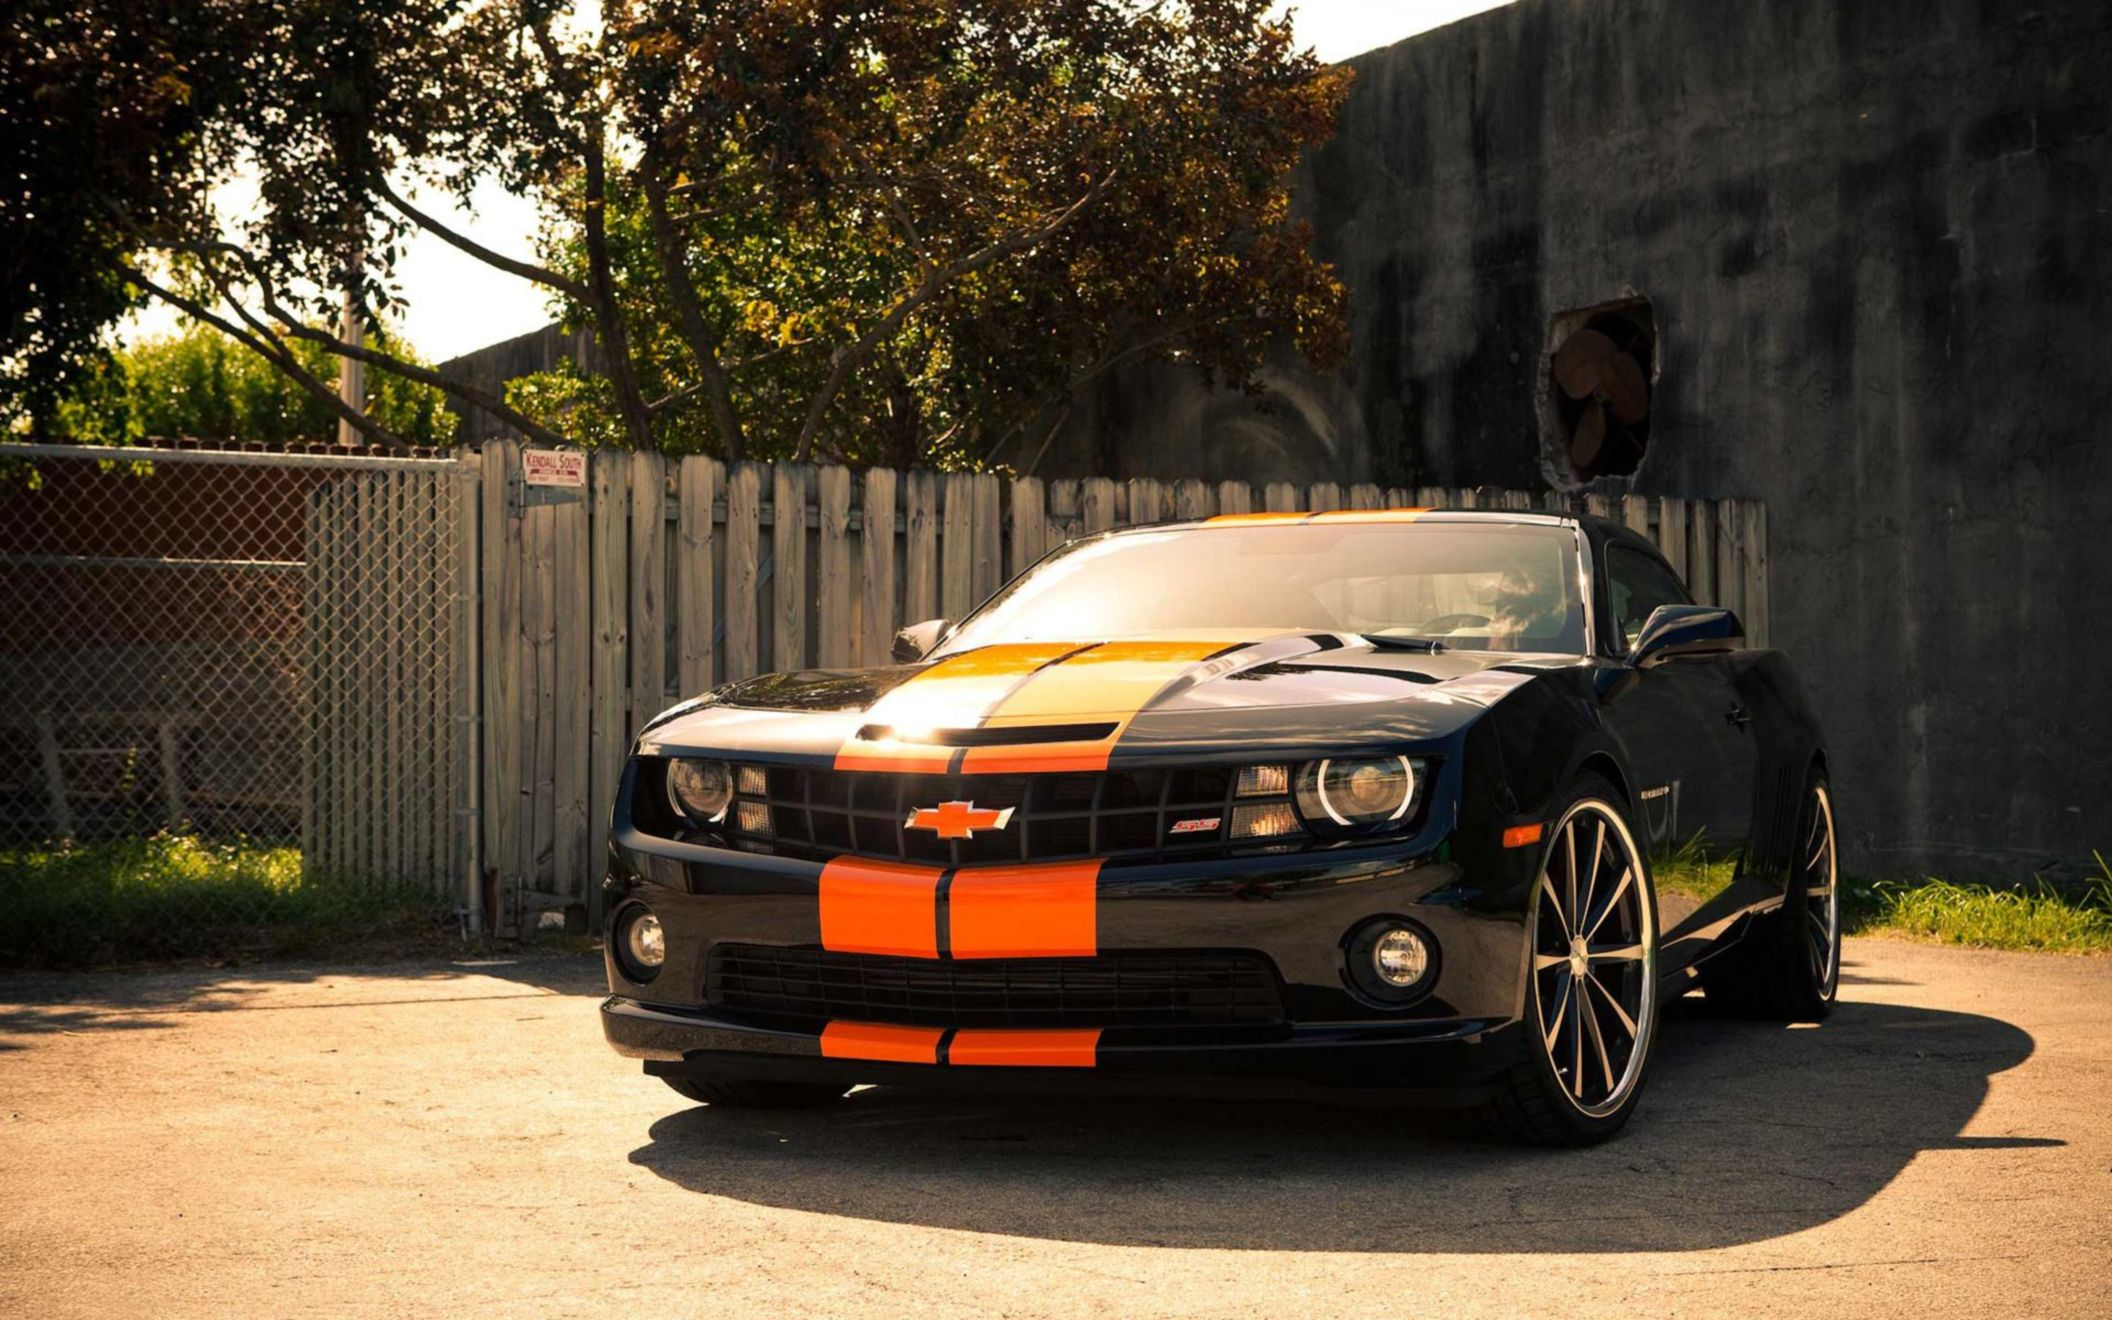 Download free HD Chevrolet Camaro Ss Car Wide Wallpaper, image